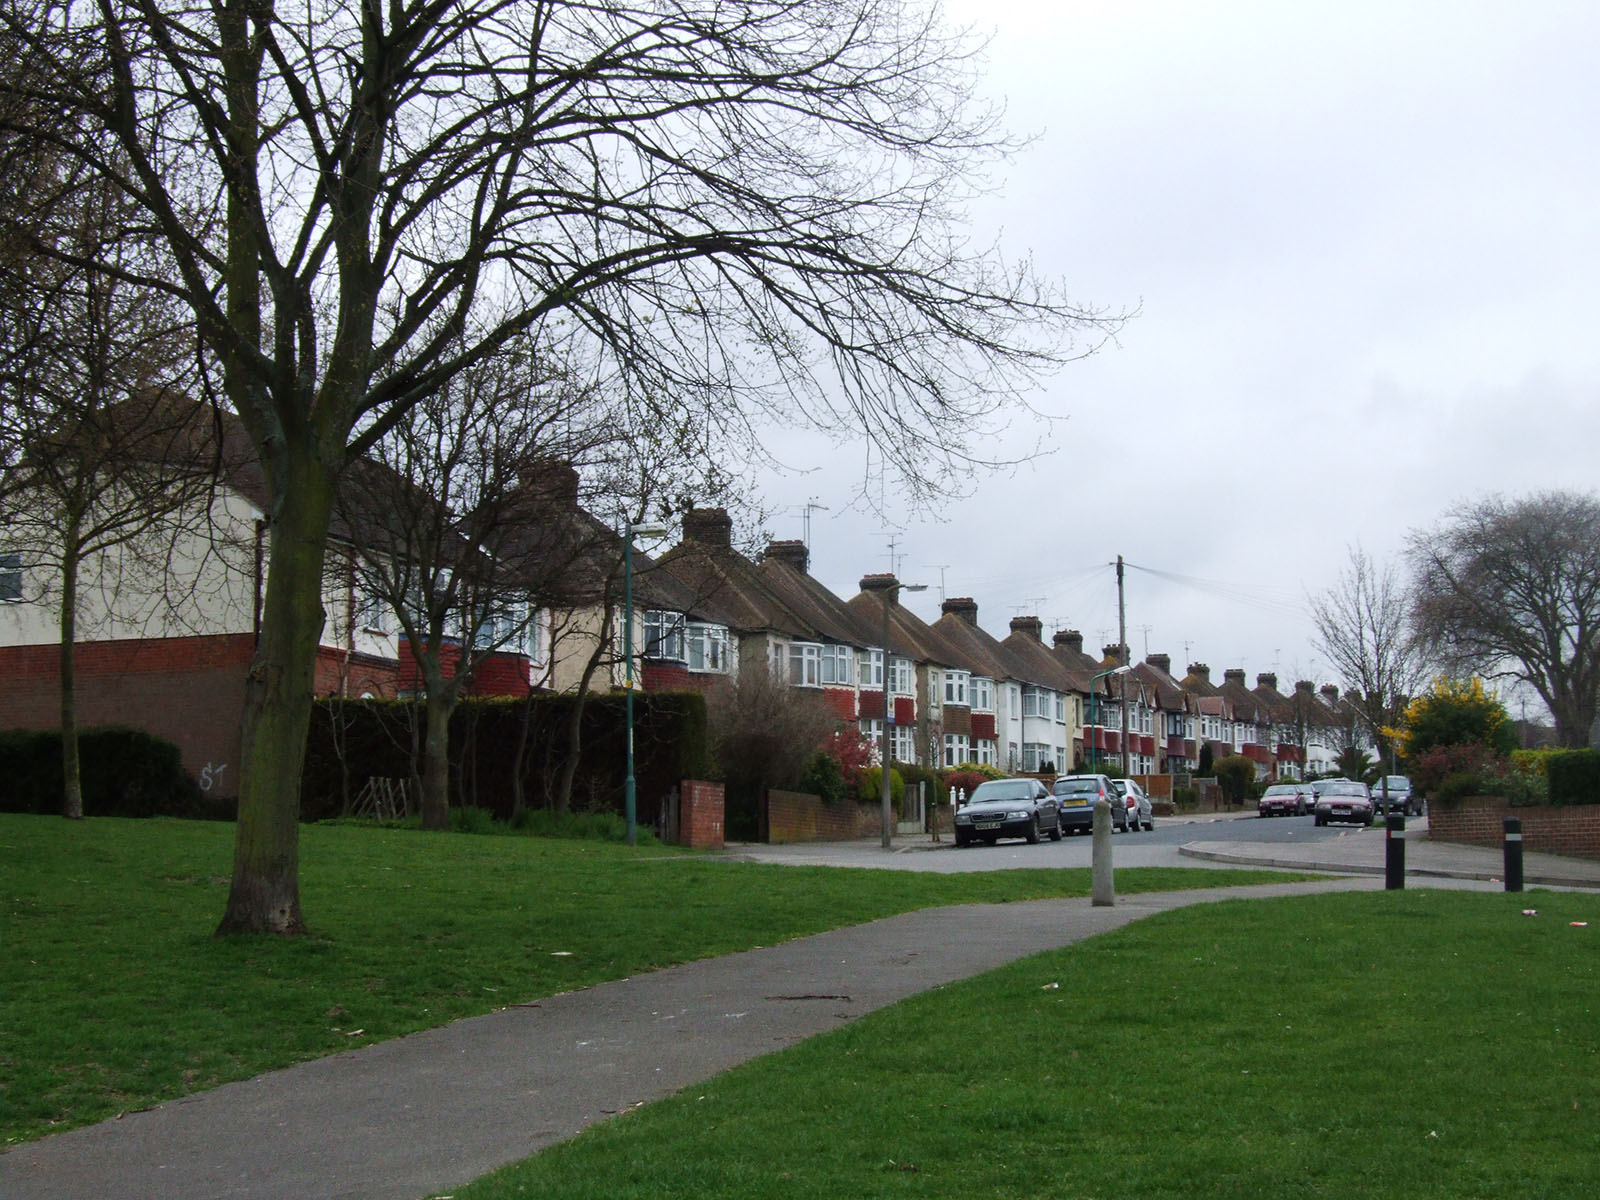 Hawthorn Avenue in Rainham, Medway.